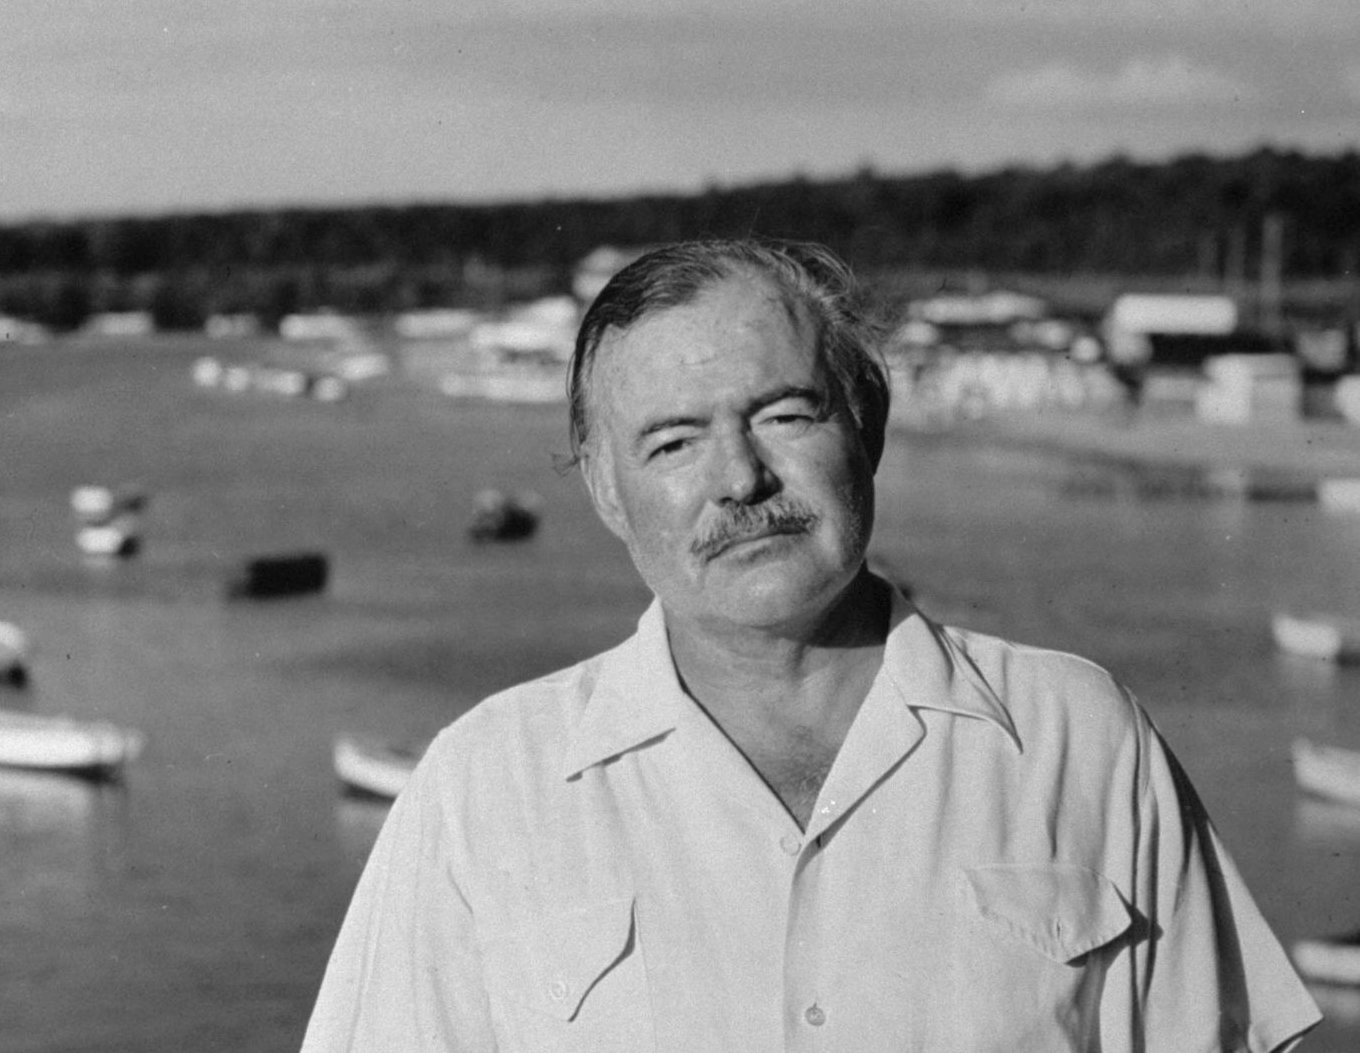 Image Credit: Getty Images/Photo of Ernest Hemingway